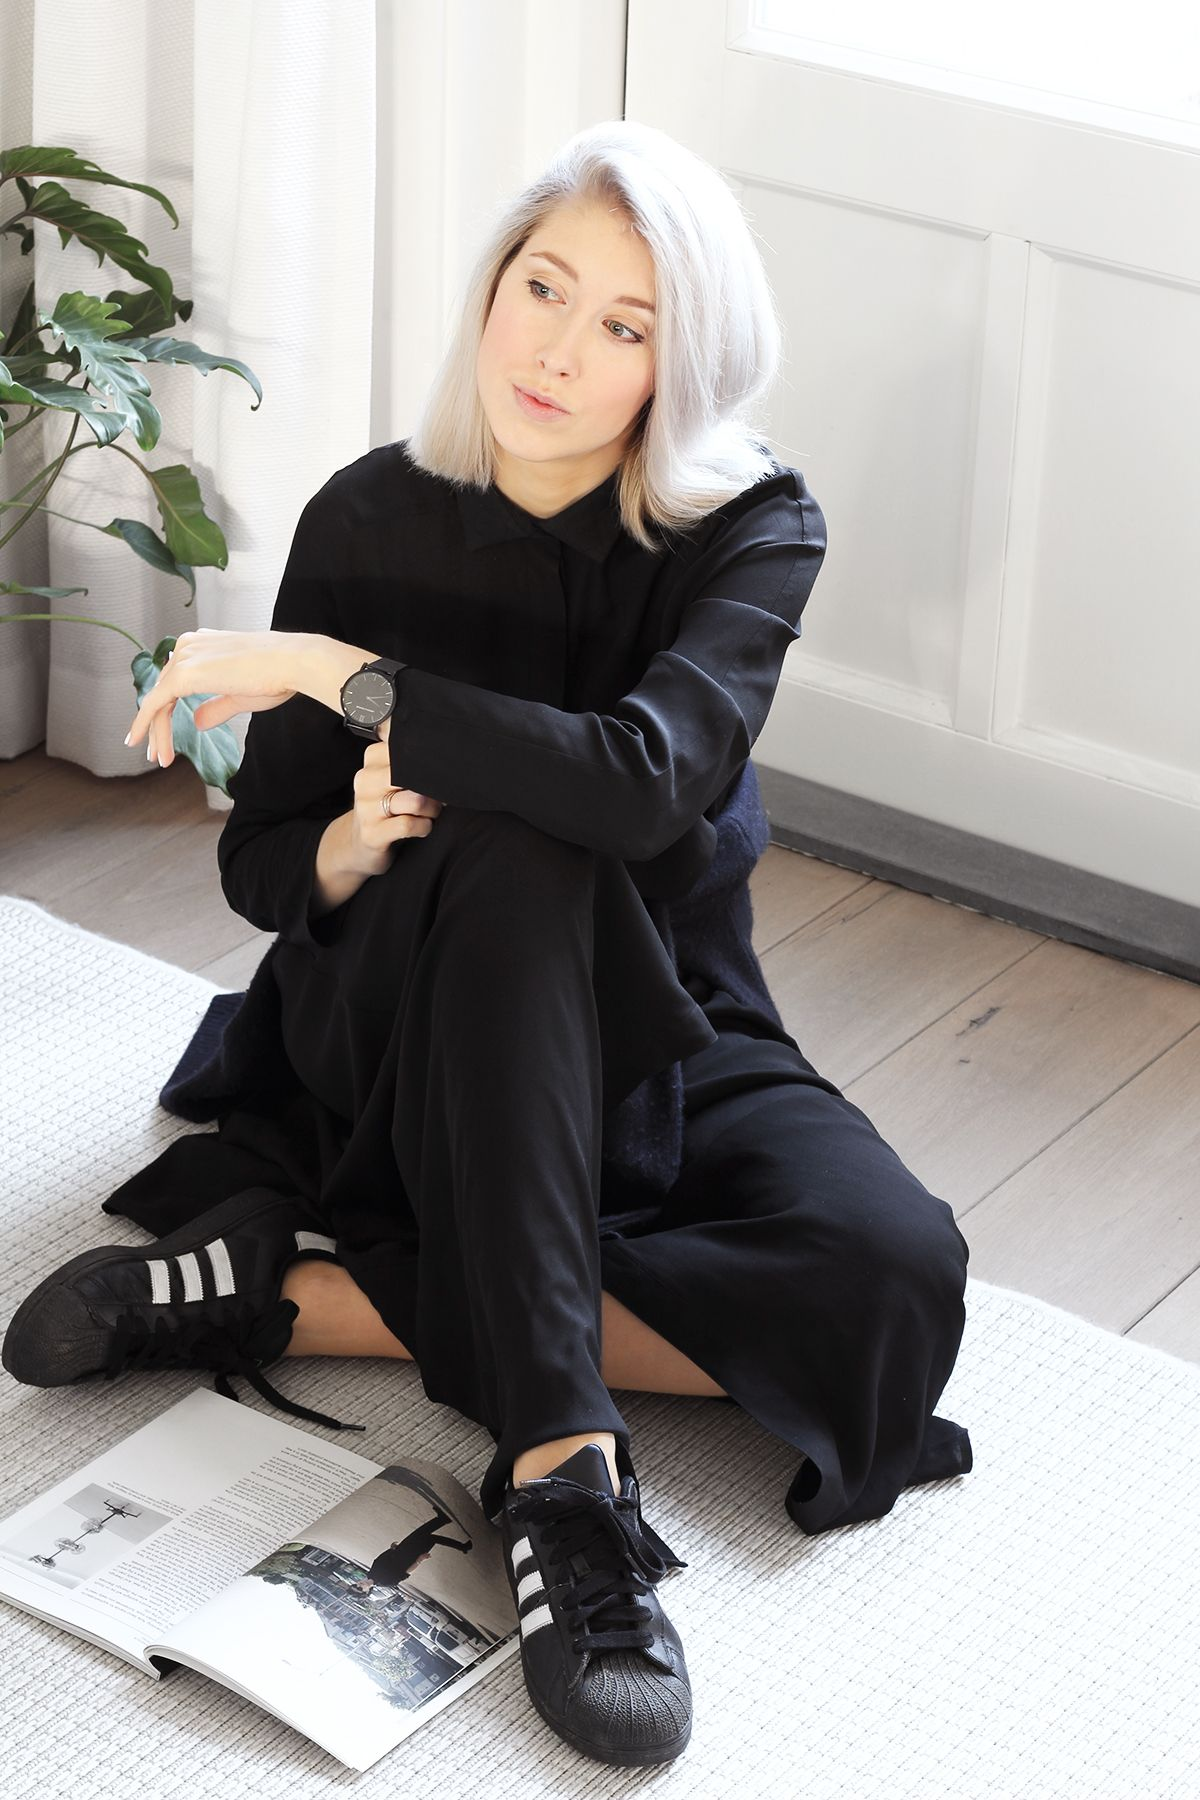 Black dress with adidas shoes - Adidas Superstar Revival Long Dress Mydubio